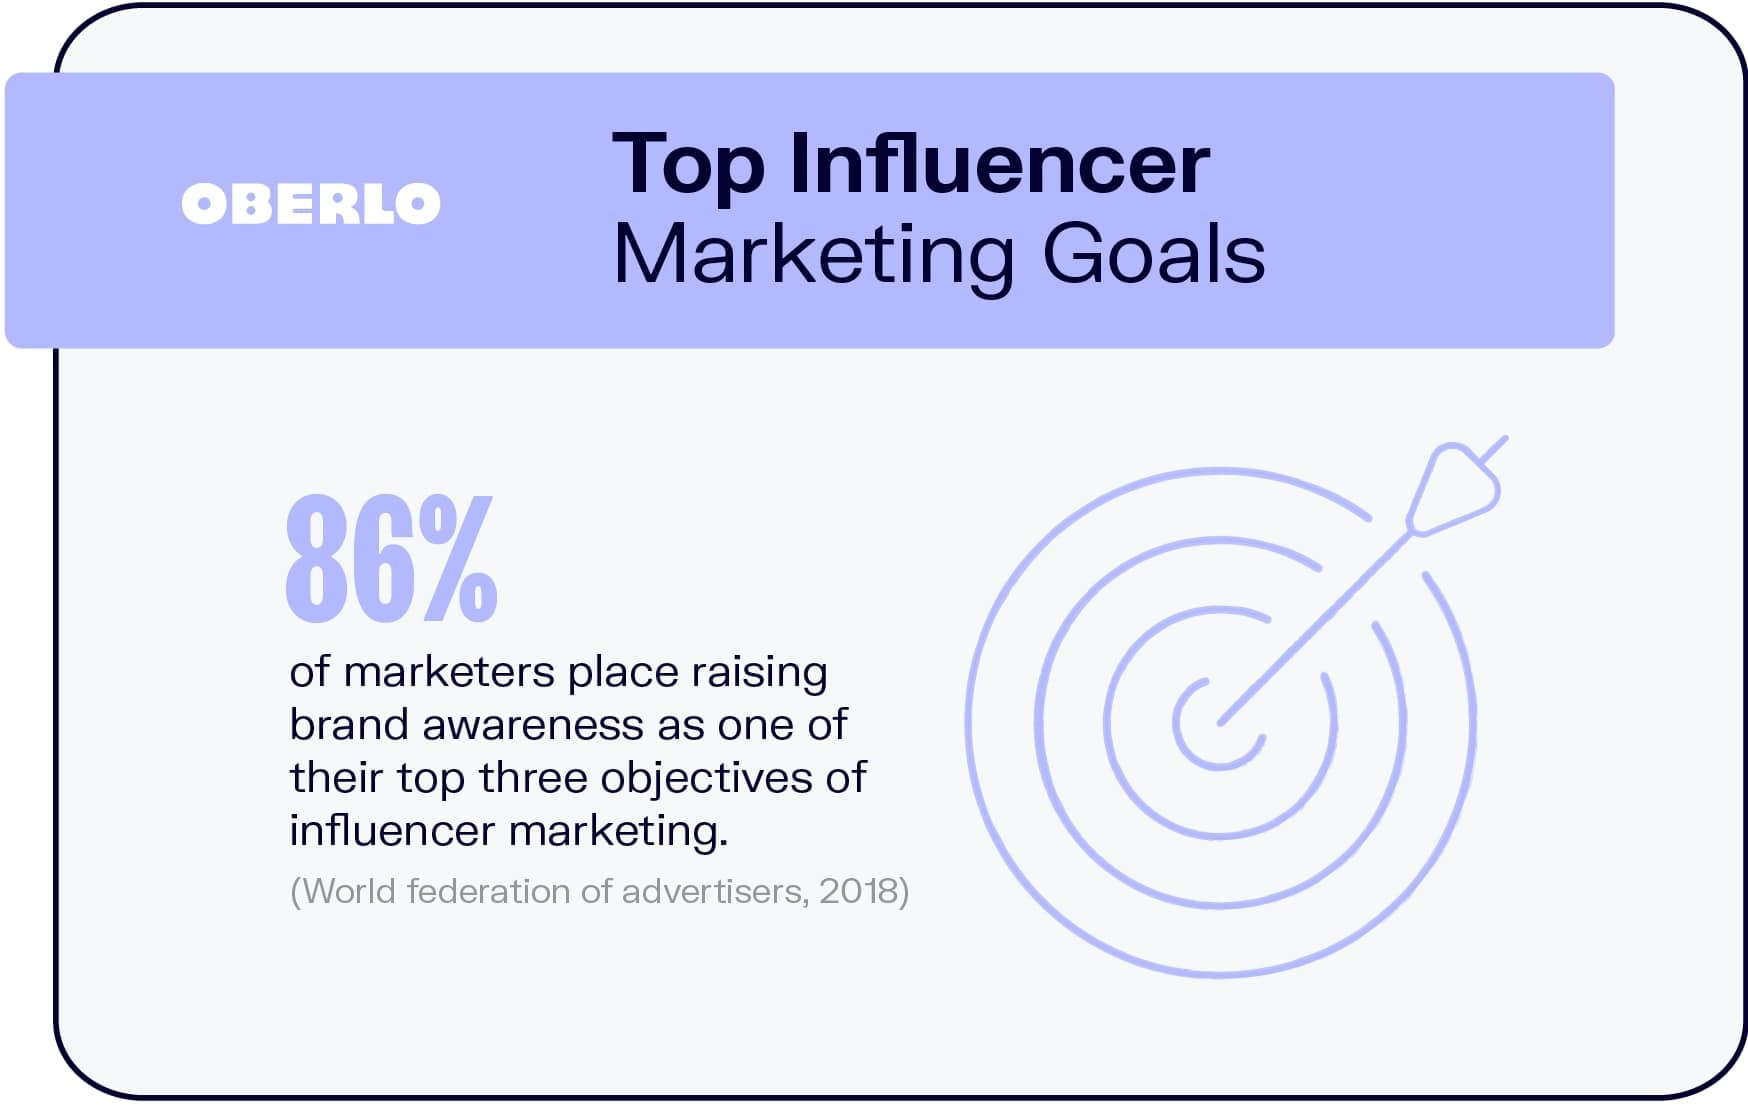 Top Influencer Marketing Goals